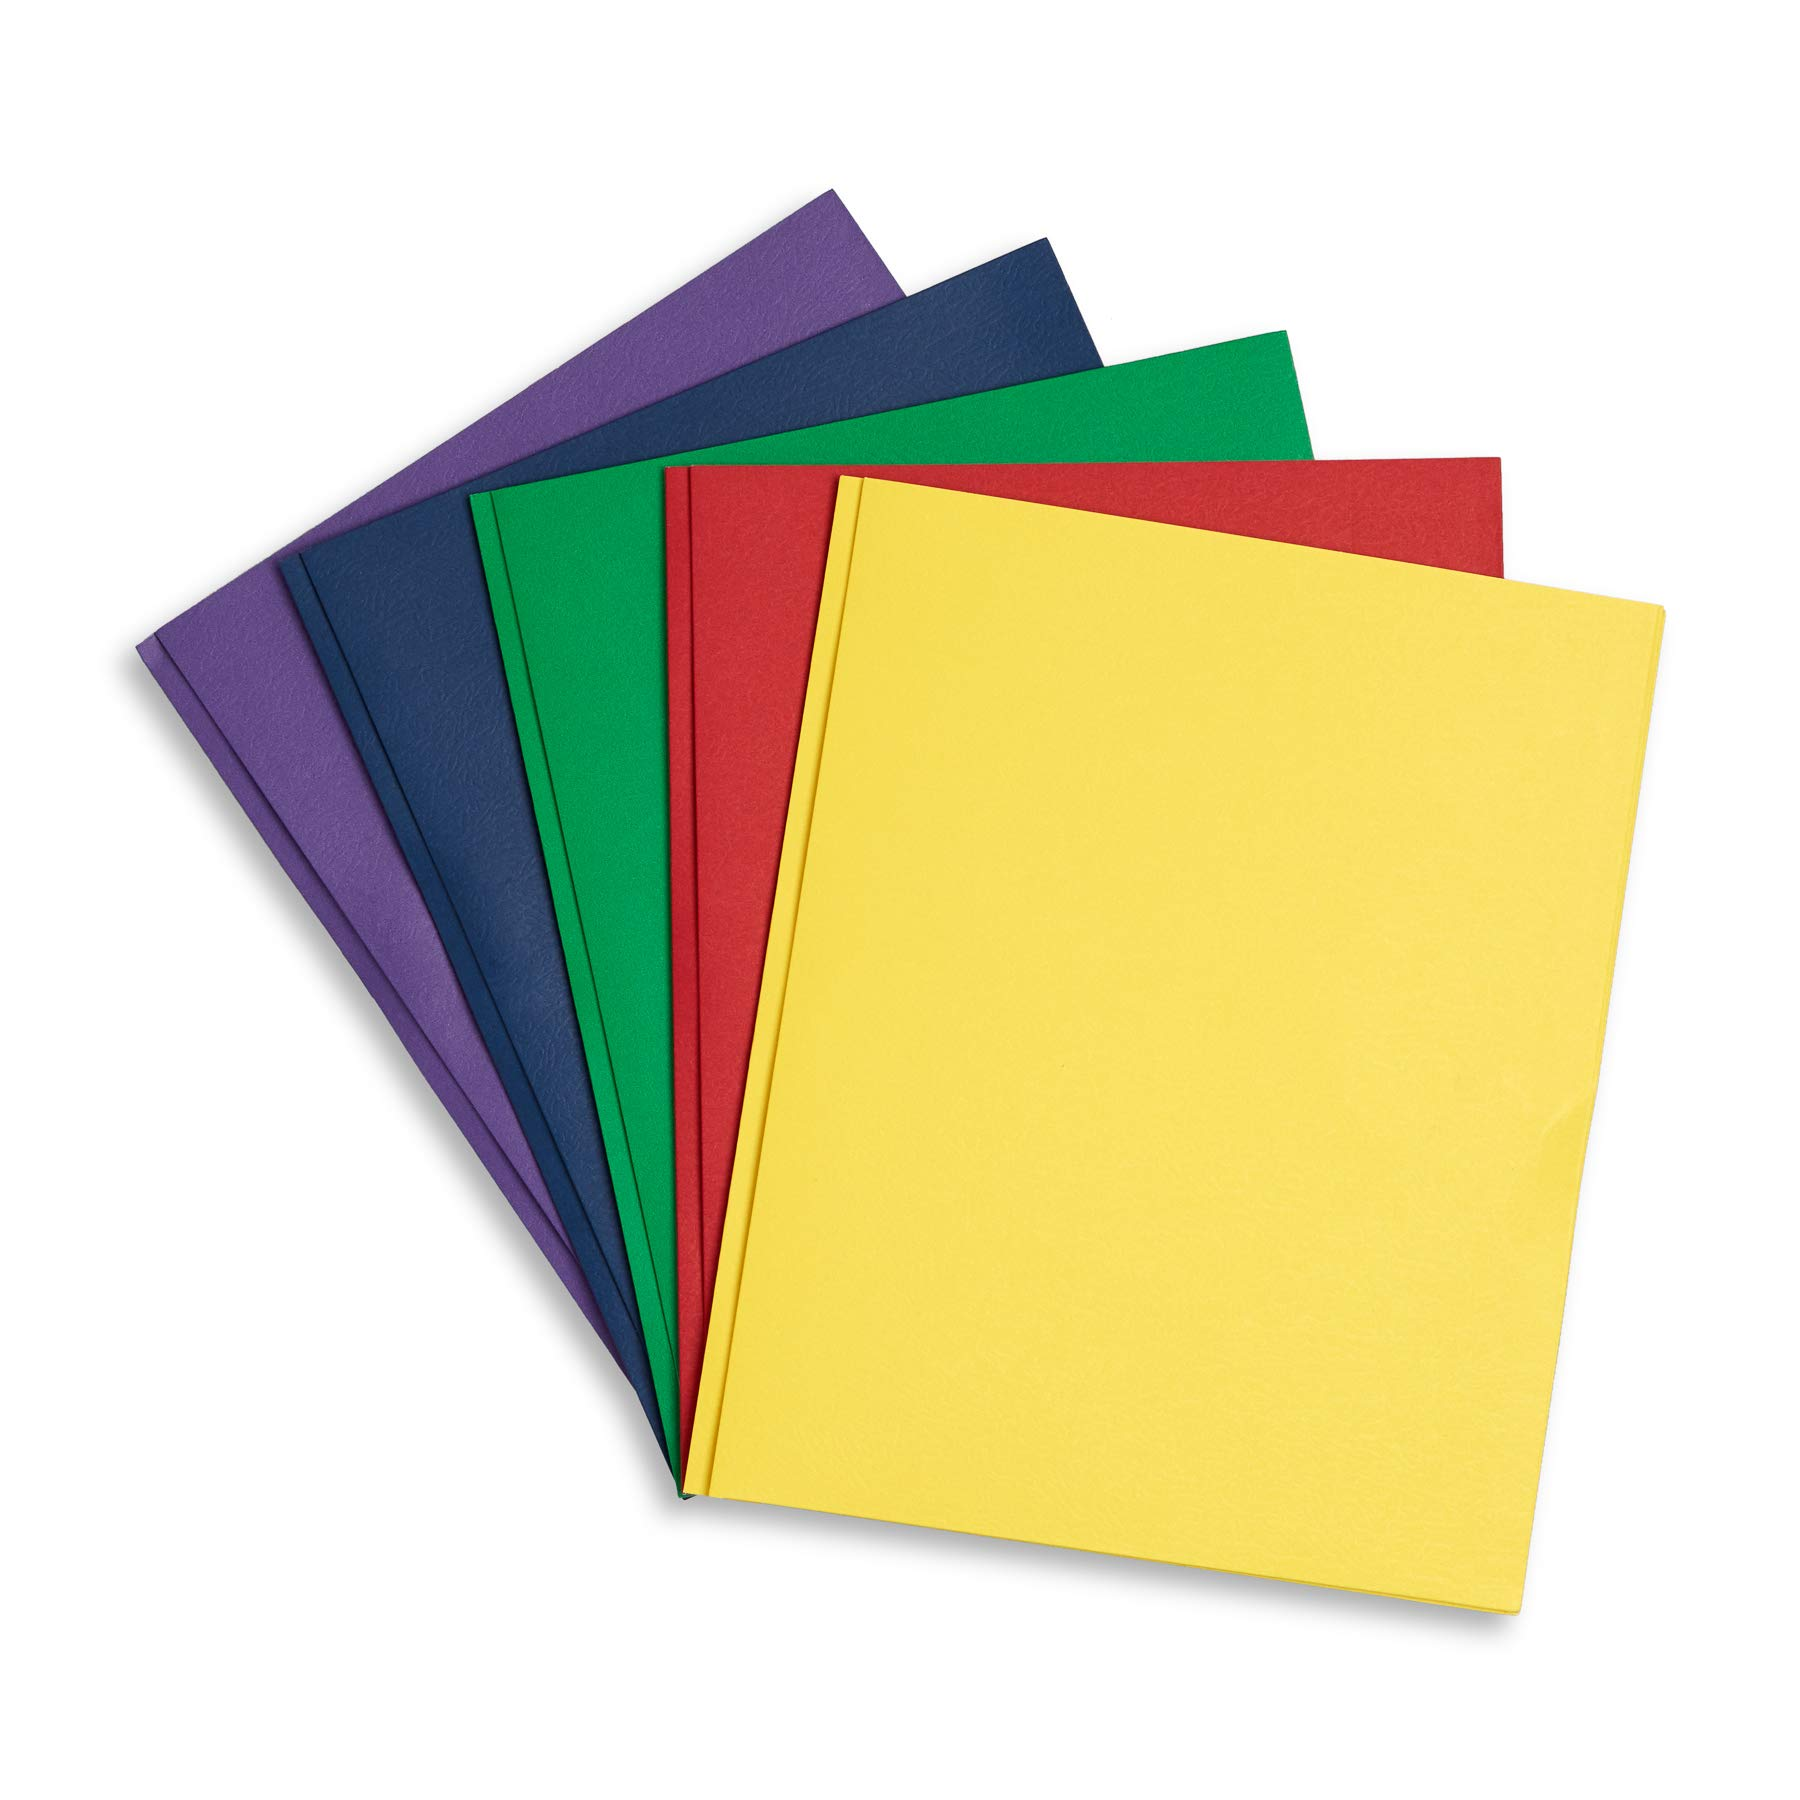 Blue Summit Supplies 100 Two Pocket Folders with Prongs, Designed for Office and Classroom Use, Assorted 5 Colors, 100 Pack Colored 2 Pocket 3 Prong Folders